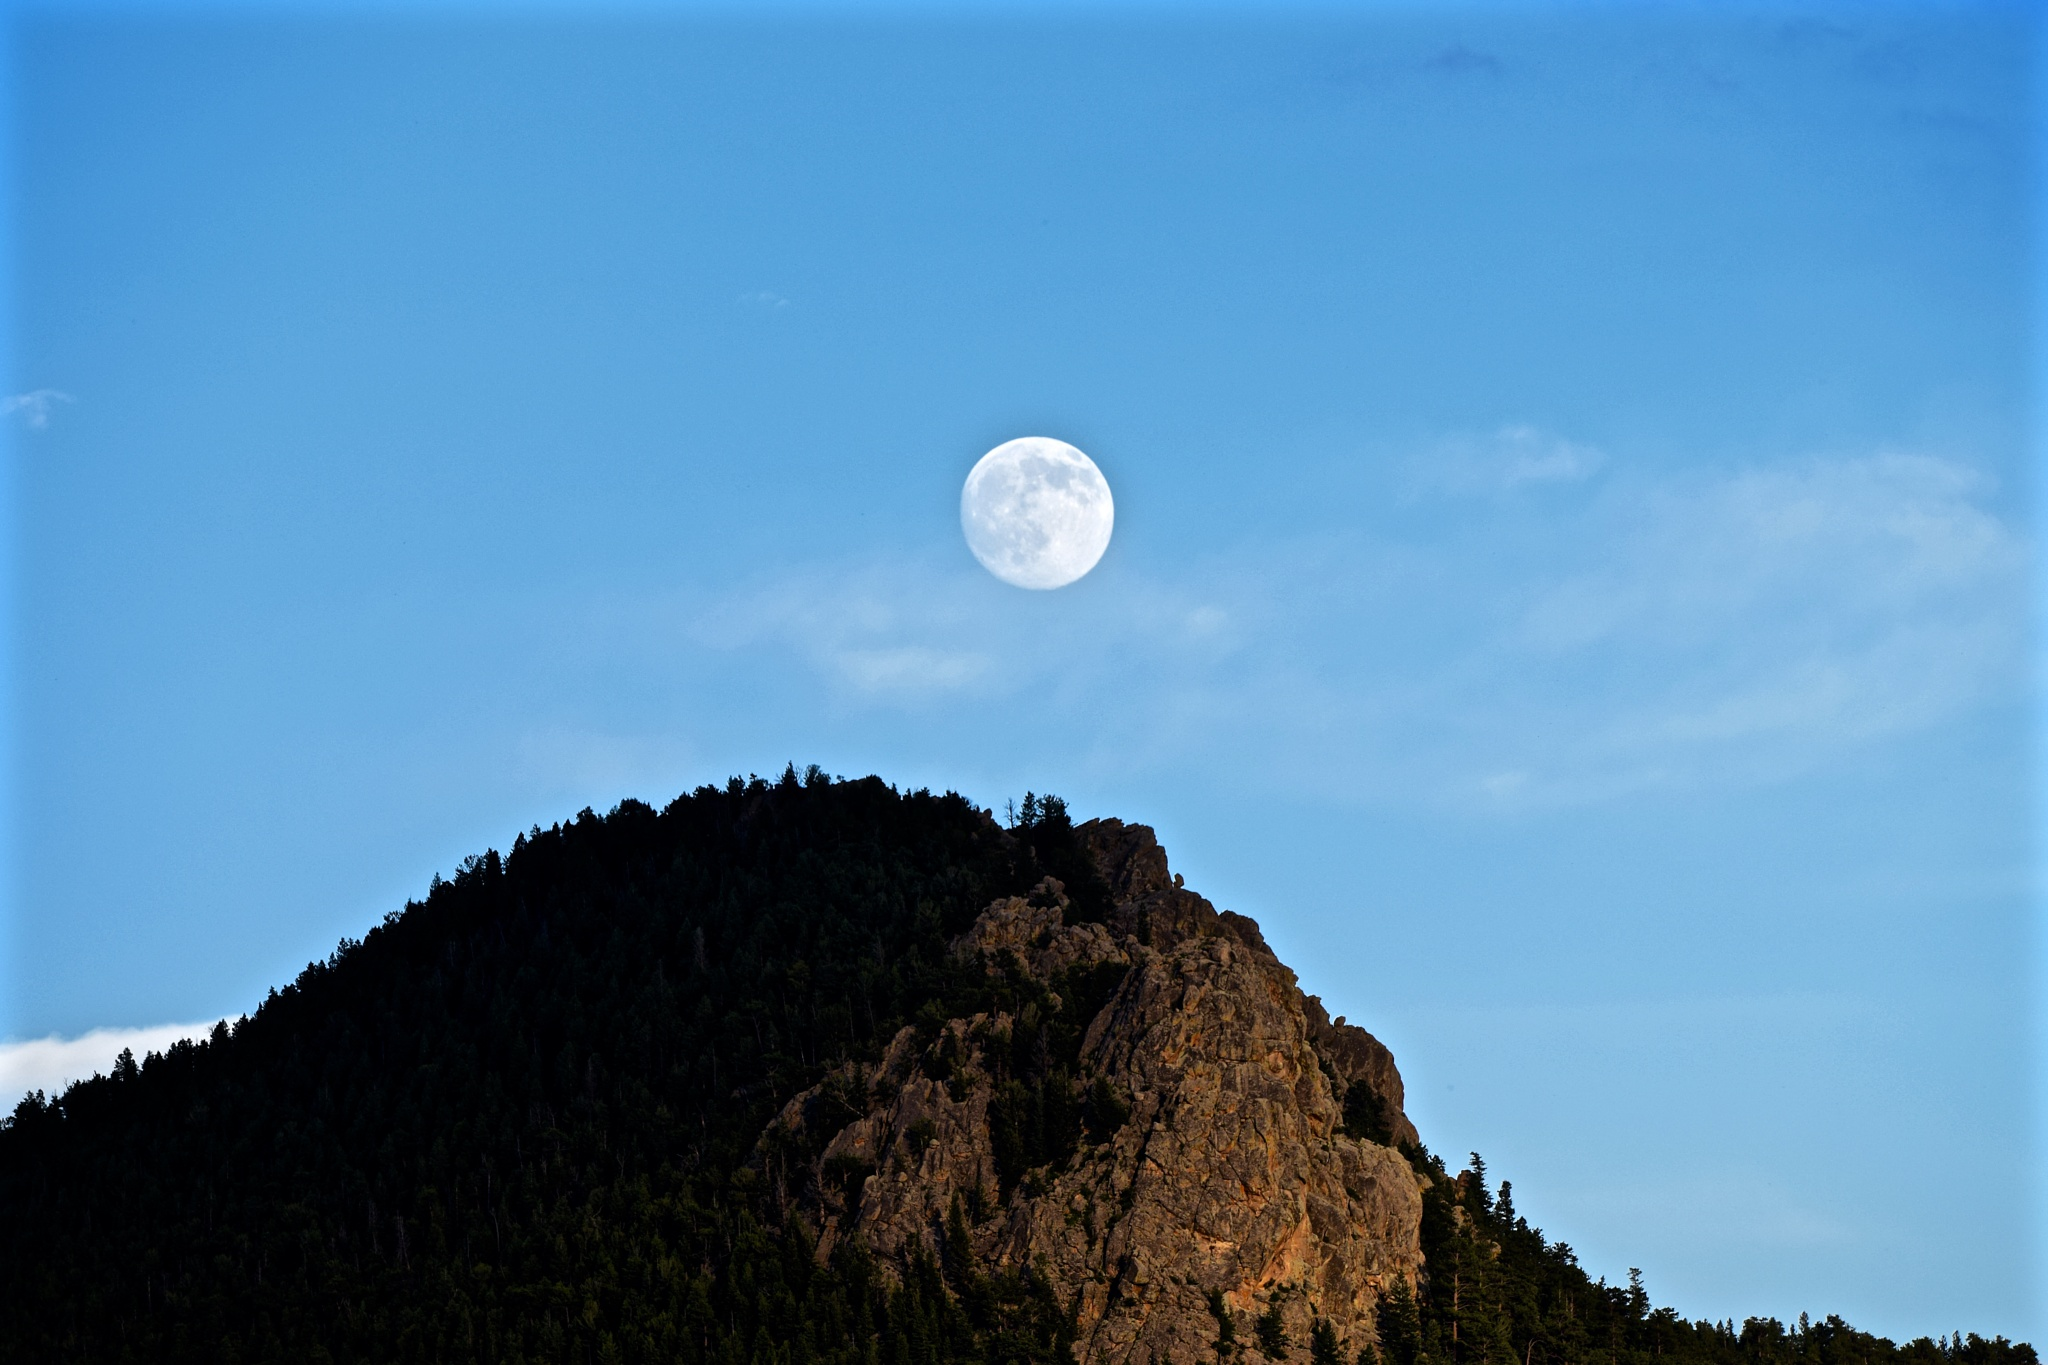 The Moon & the Mountain. by brutale910crb